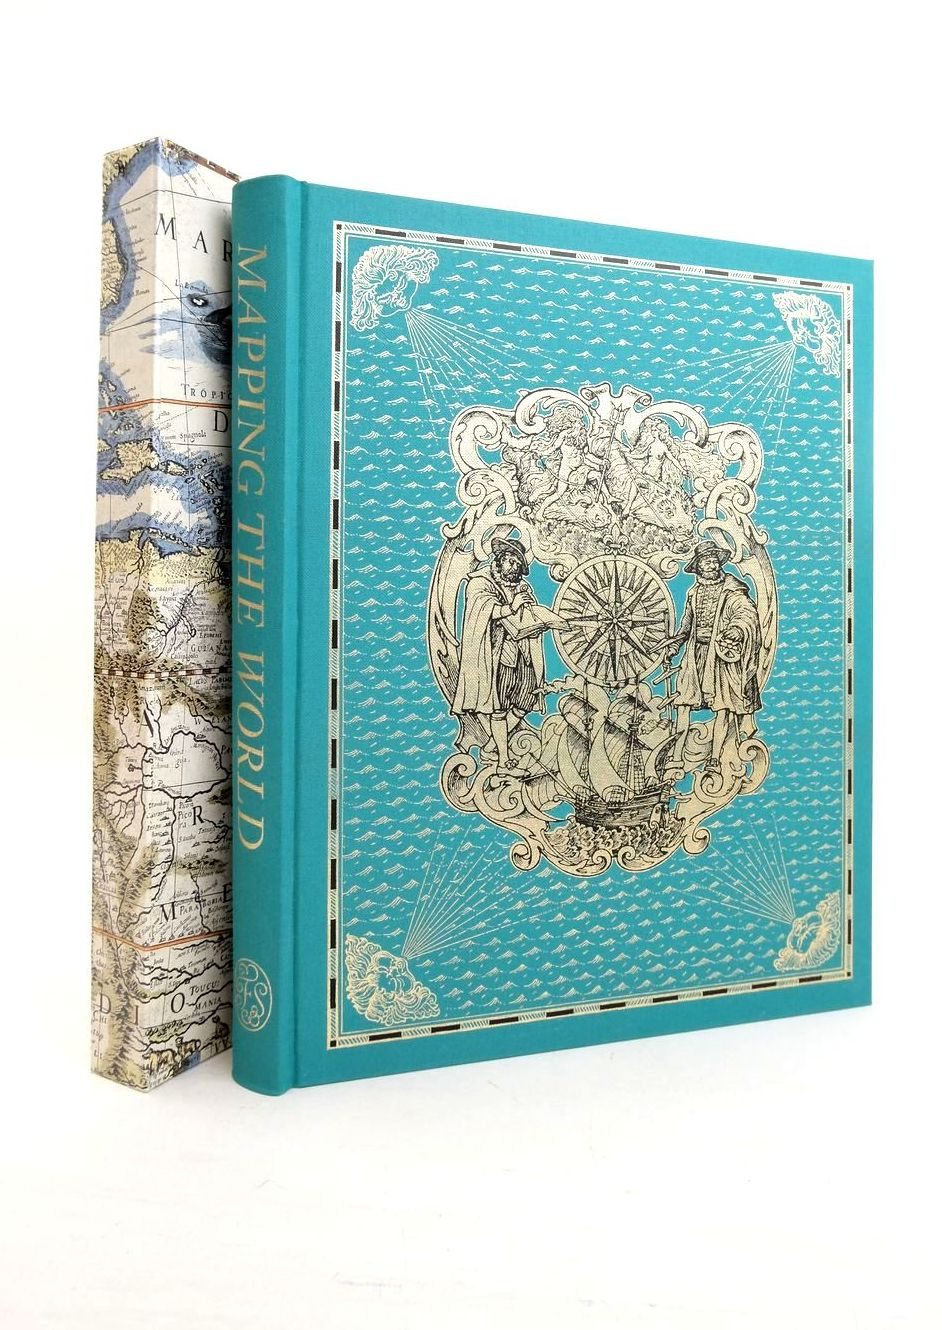 Photo of MAPPING THE WORLD written by Whitfield, Peter published by Folio Society (STOCK CODE: 1821774)  for sale by Stella & Rose's Books